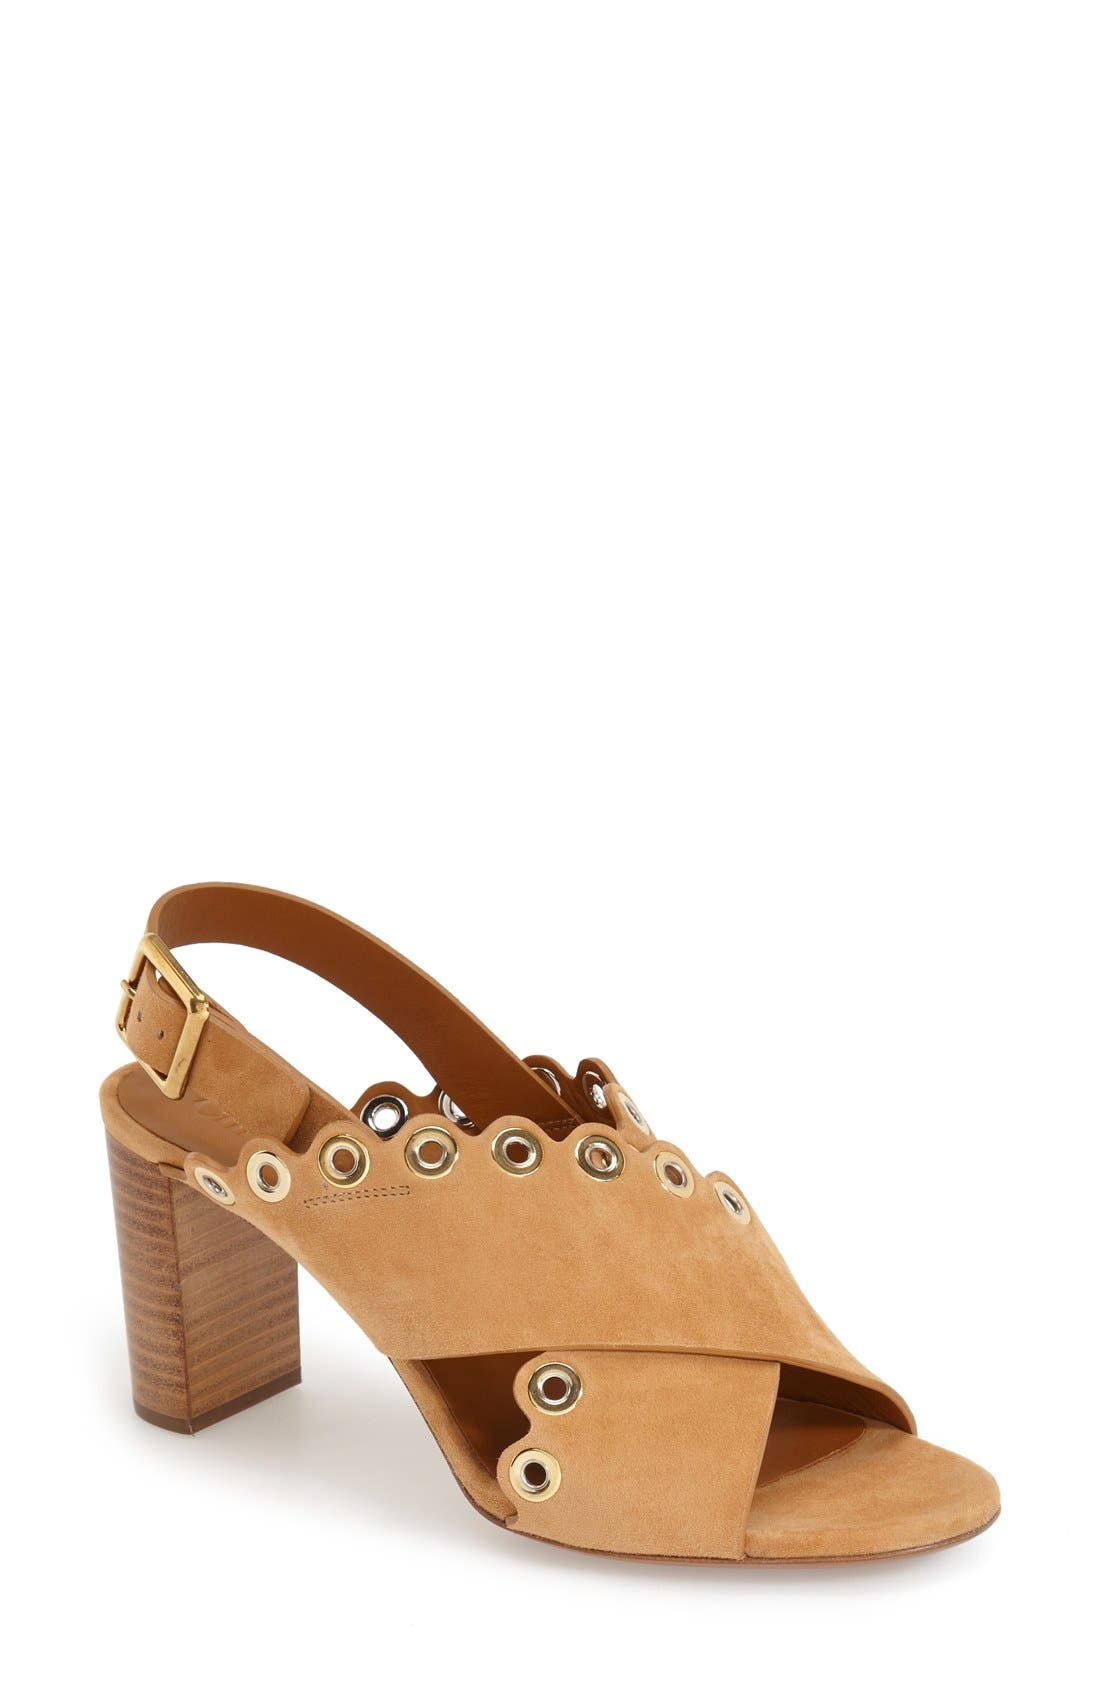 'Flo' Sandal,                         Main,                         color, Beige Suede